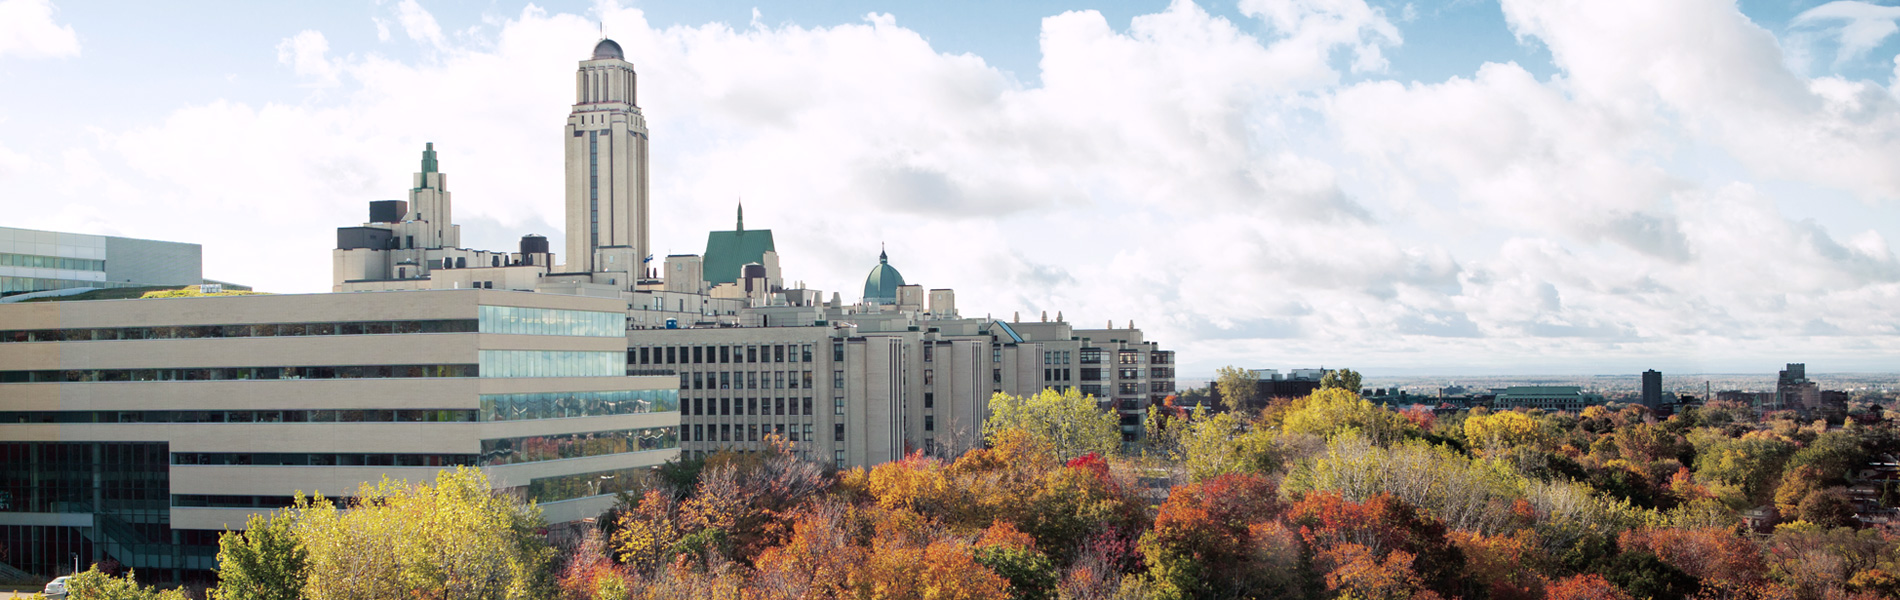 Go to the University of Montreal